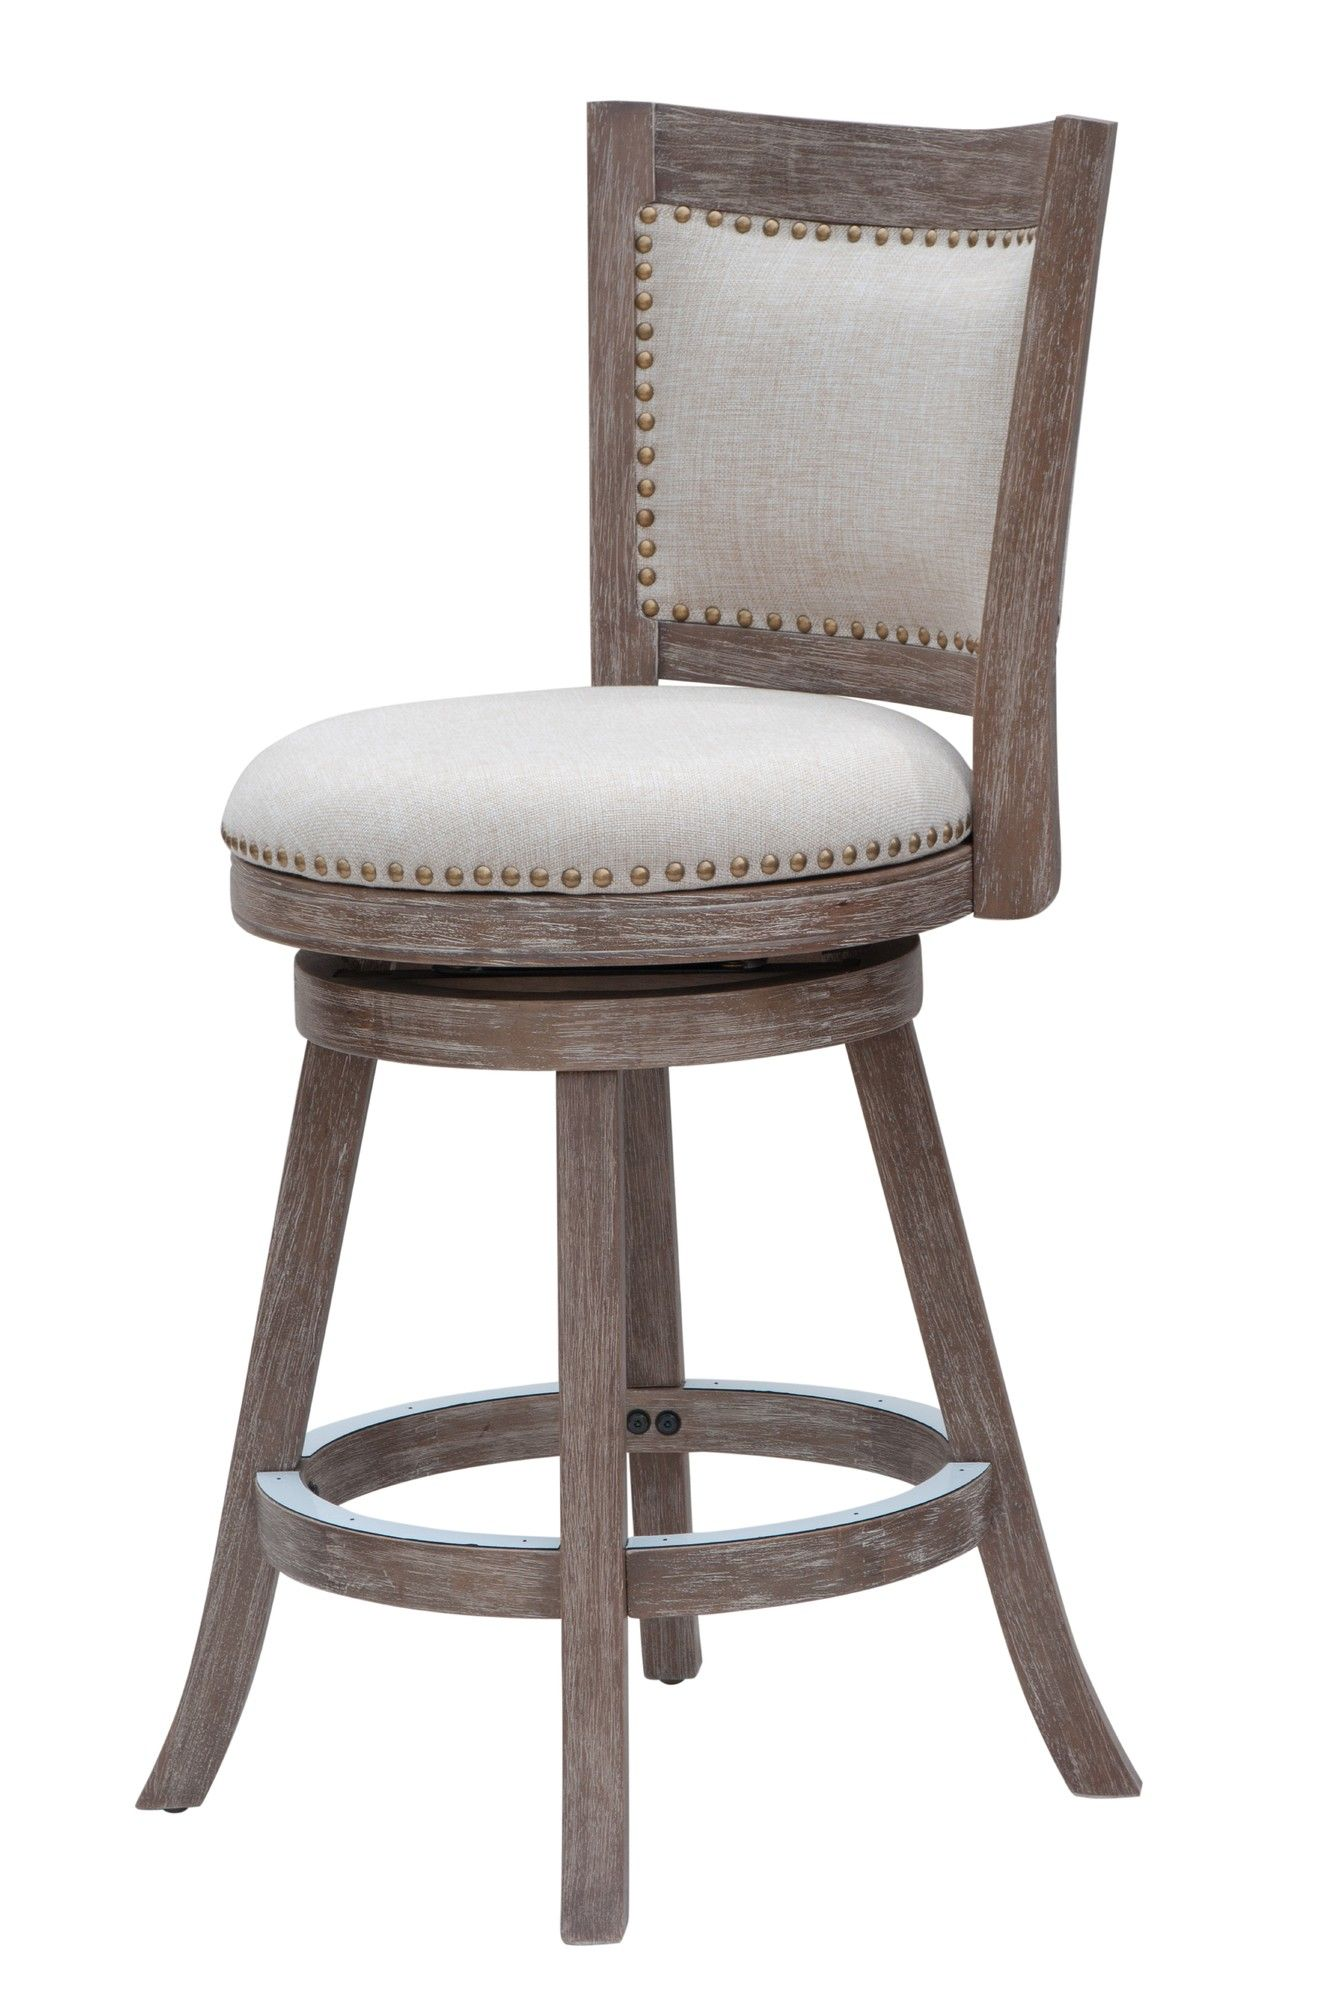 Wayfair Com Online Home Store For Furniture Decor Outdoors